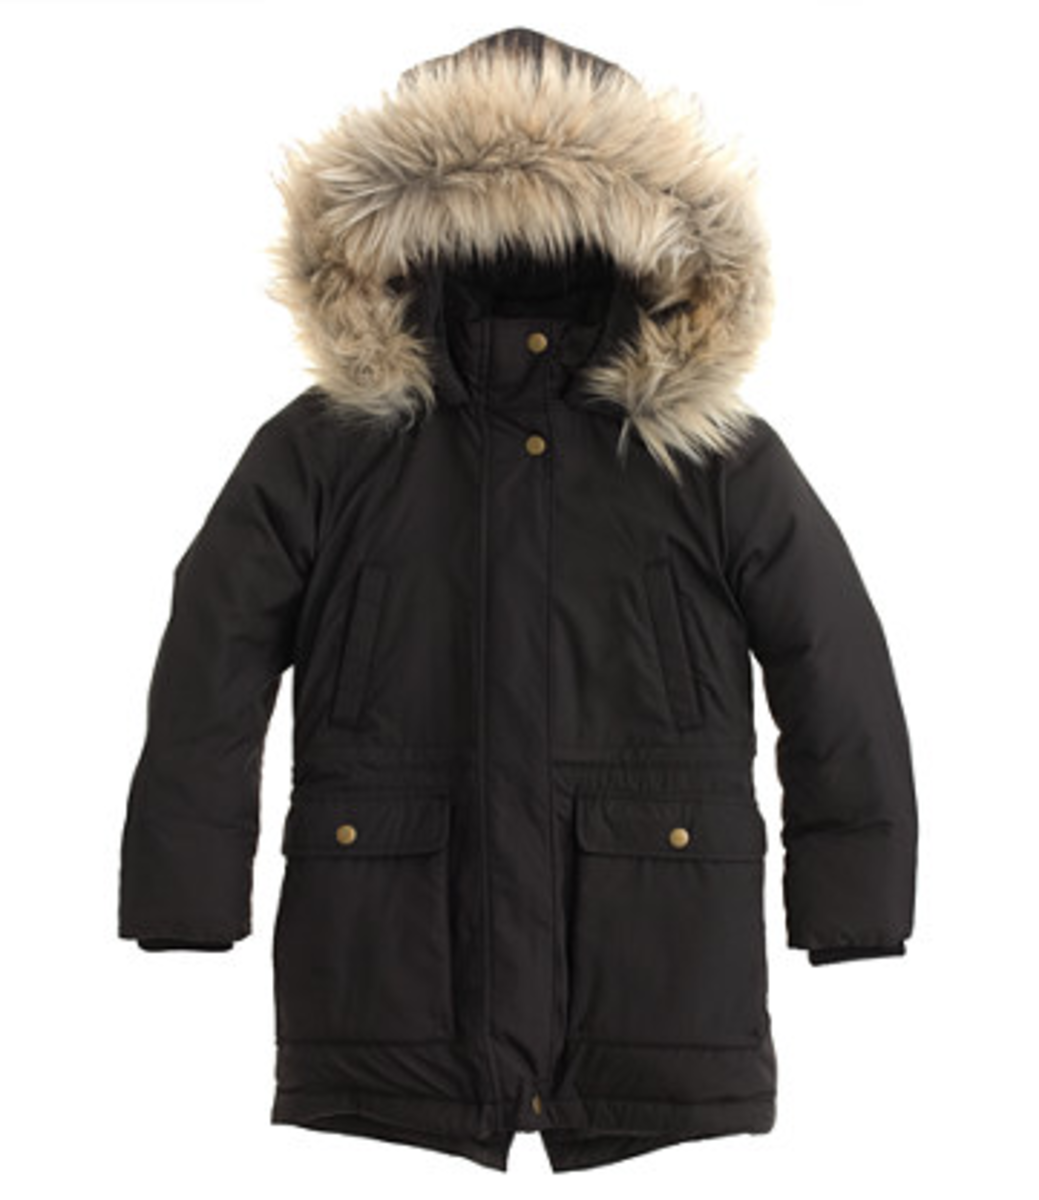 Fur Parka from Crewcuts